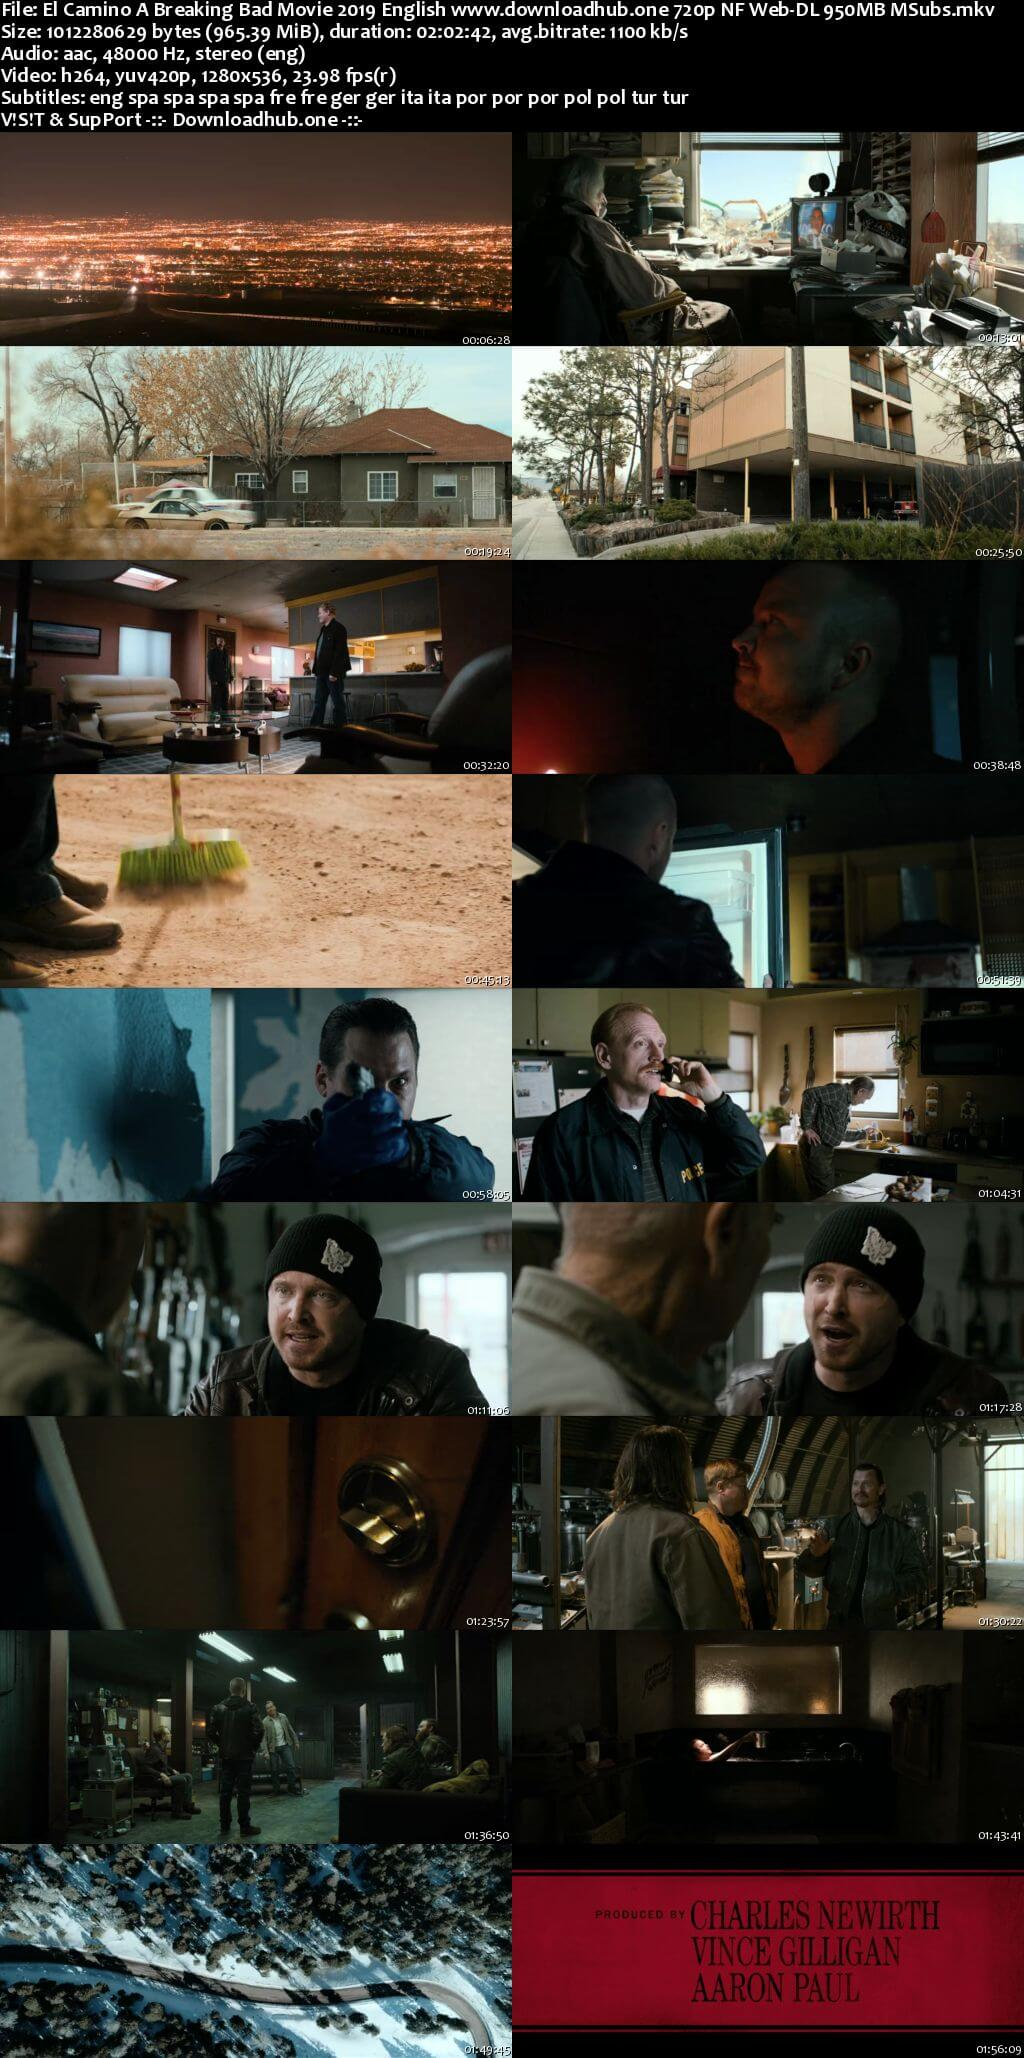 El Camino A Breaking Bad Movie 2019 English 720p NF Web-DL 950MB MSubs